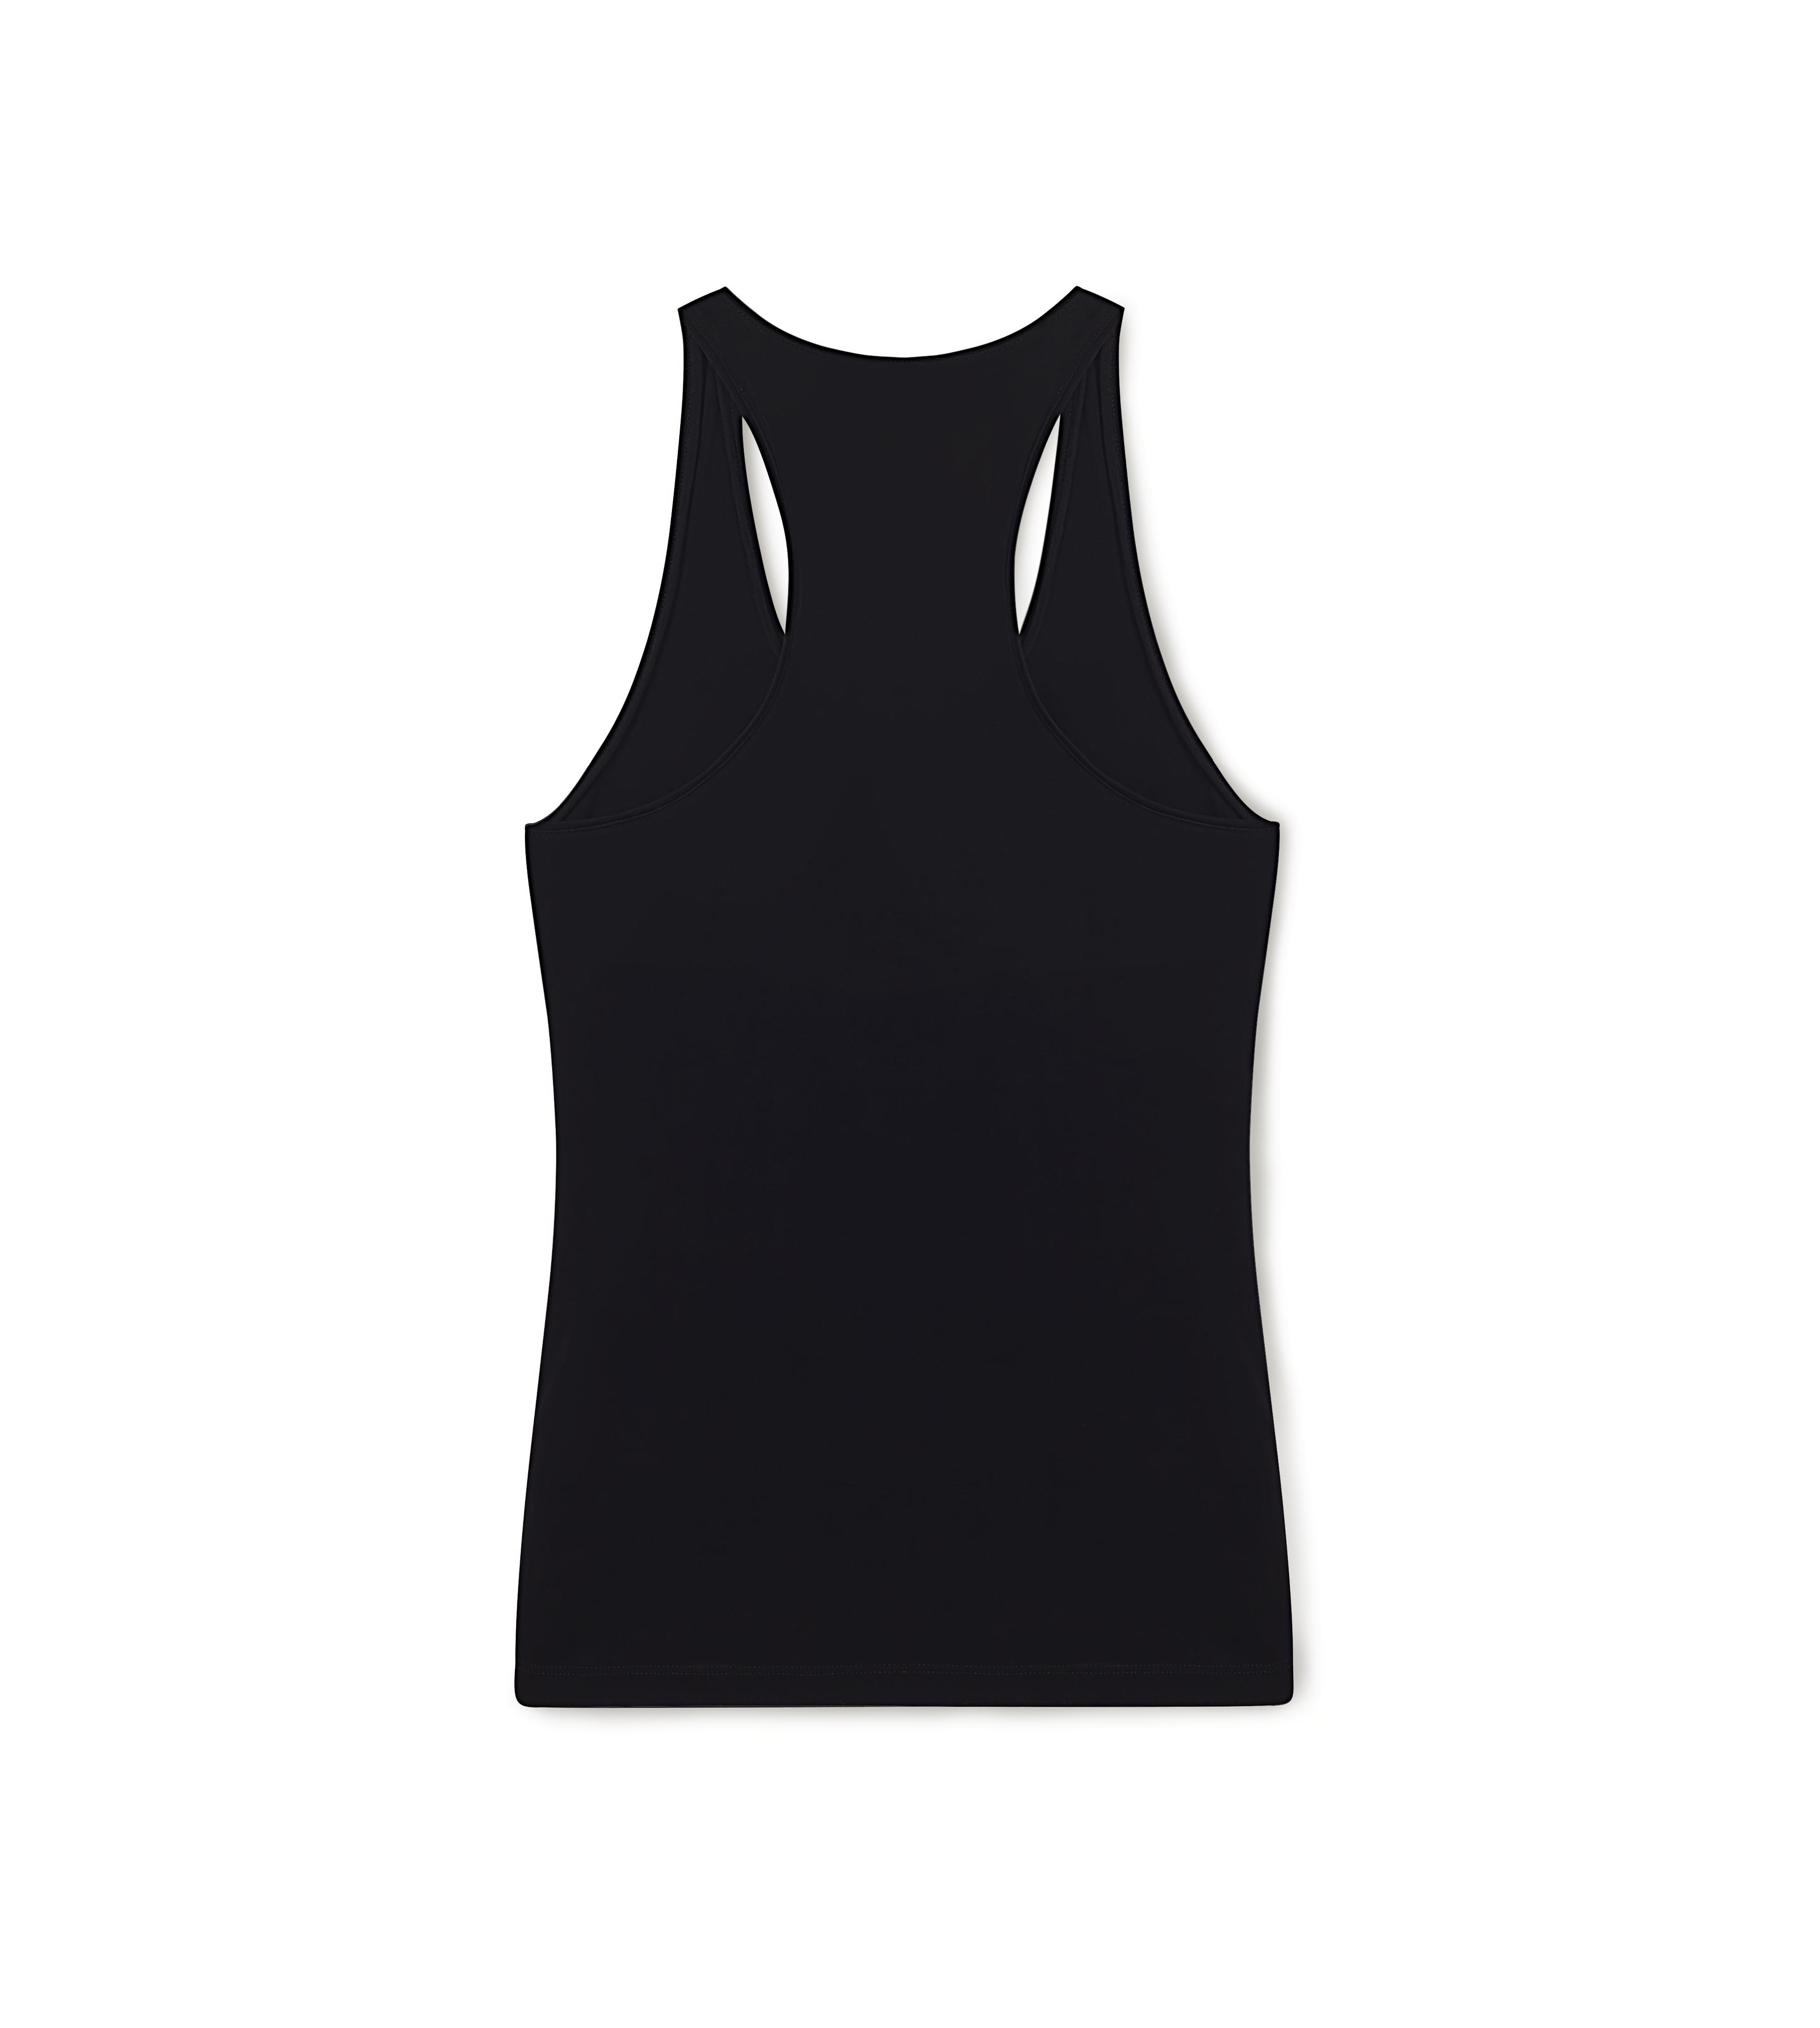 SCOOP NECK TANK TOP WITH PADLOCK ON LEATHER NECKLACE D thumbnail